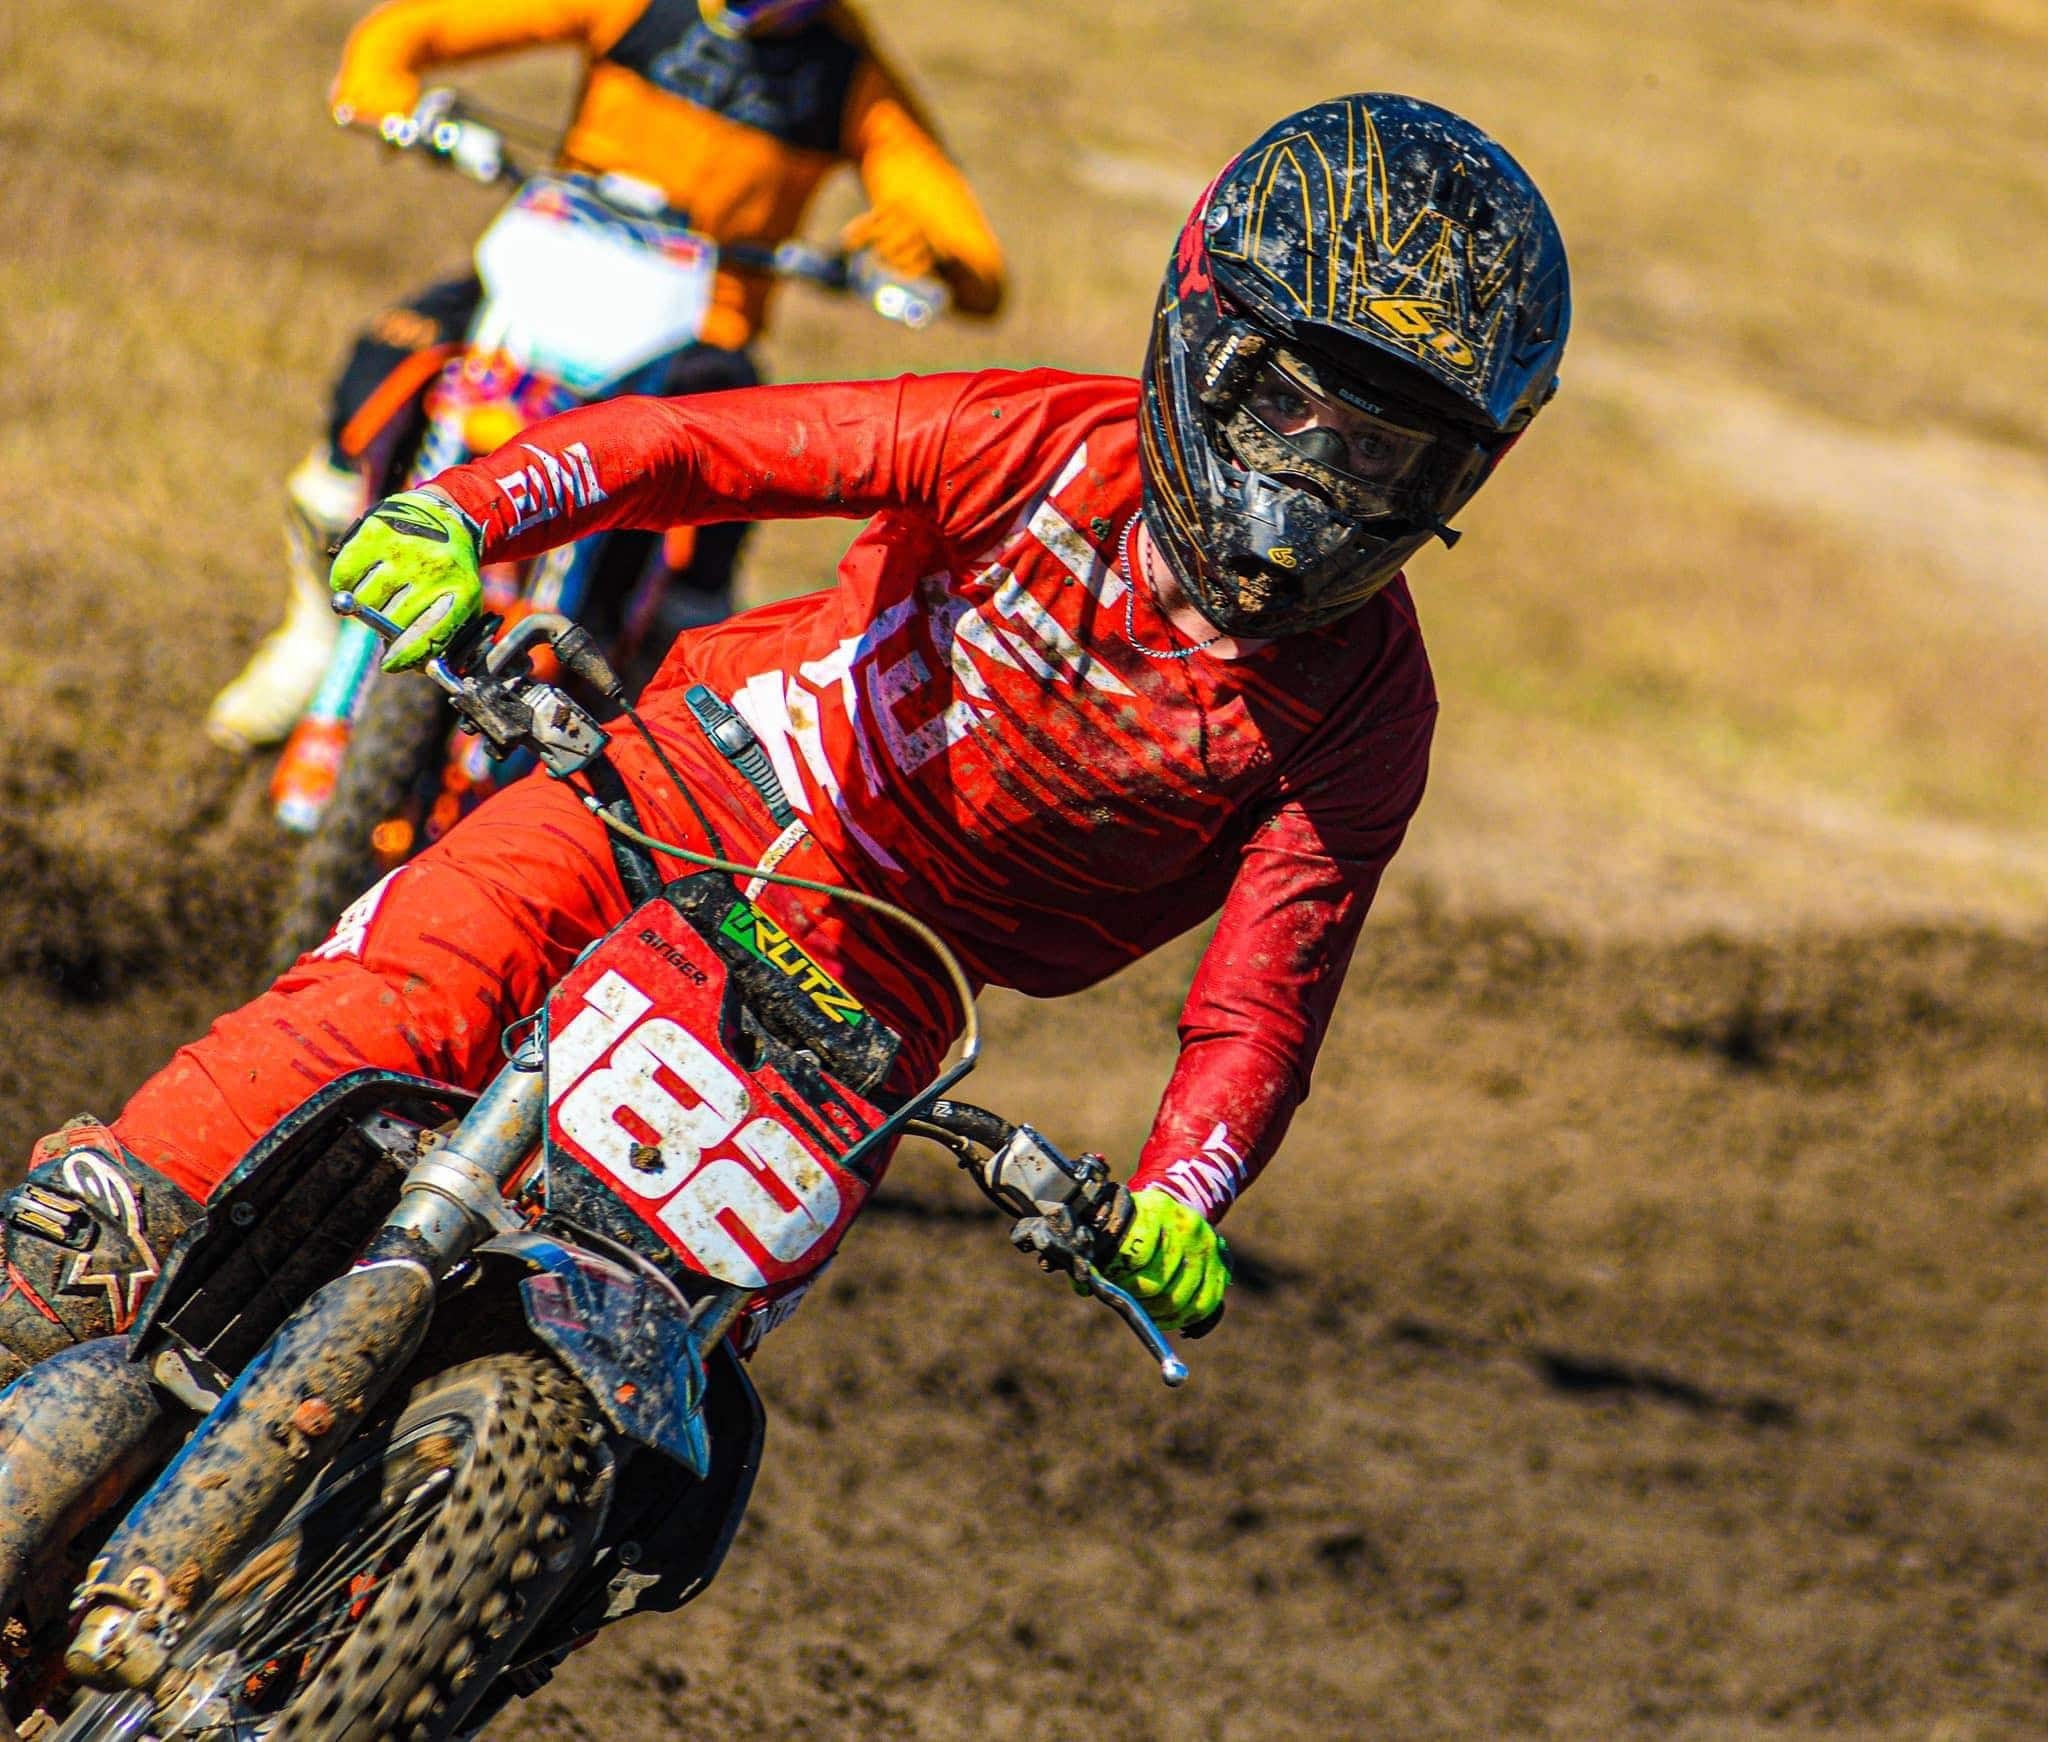 Jayden Binger Intent Mx Athlete